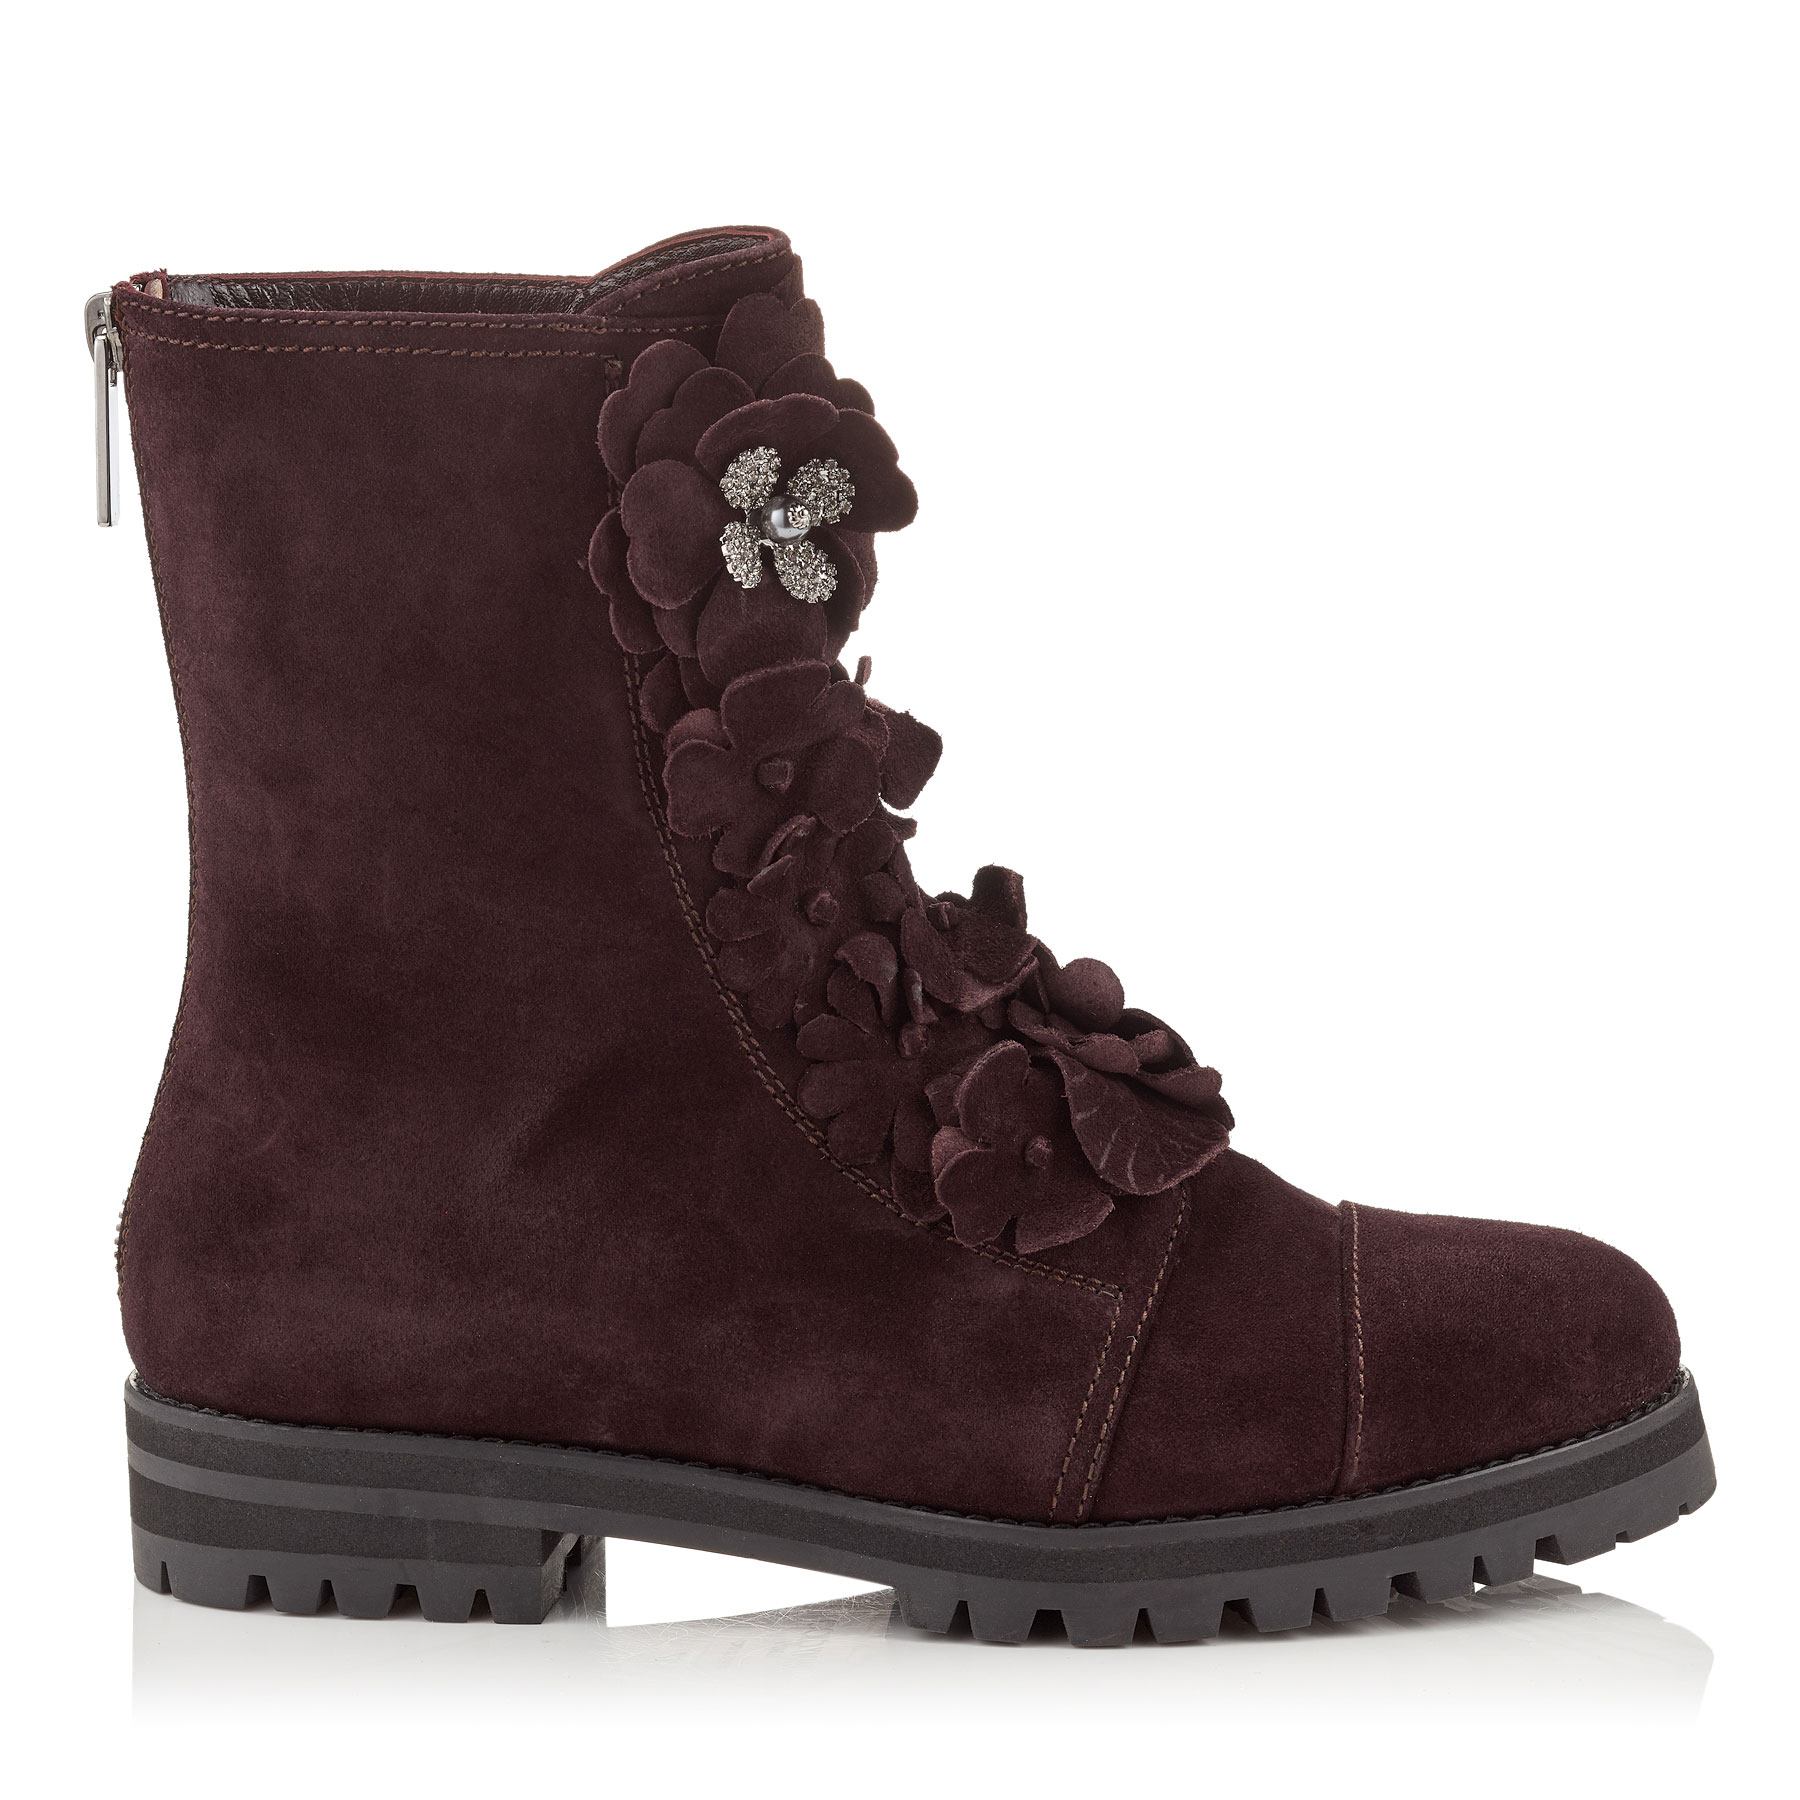 HAVANA FLAT Burgundy Suede Combat Boots with Floral Appliqué by Jimmy Choo